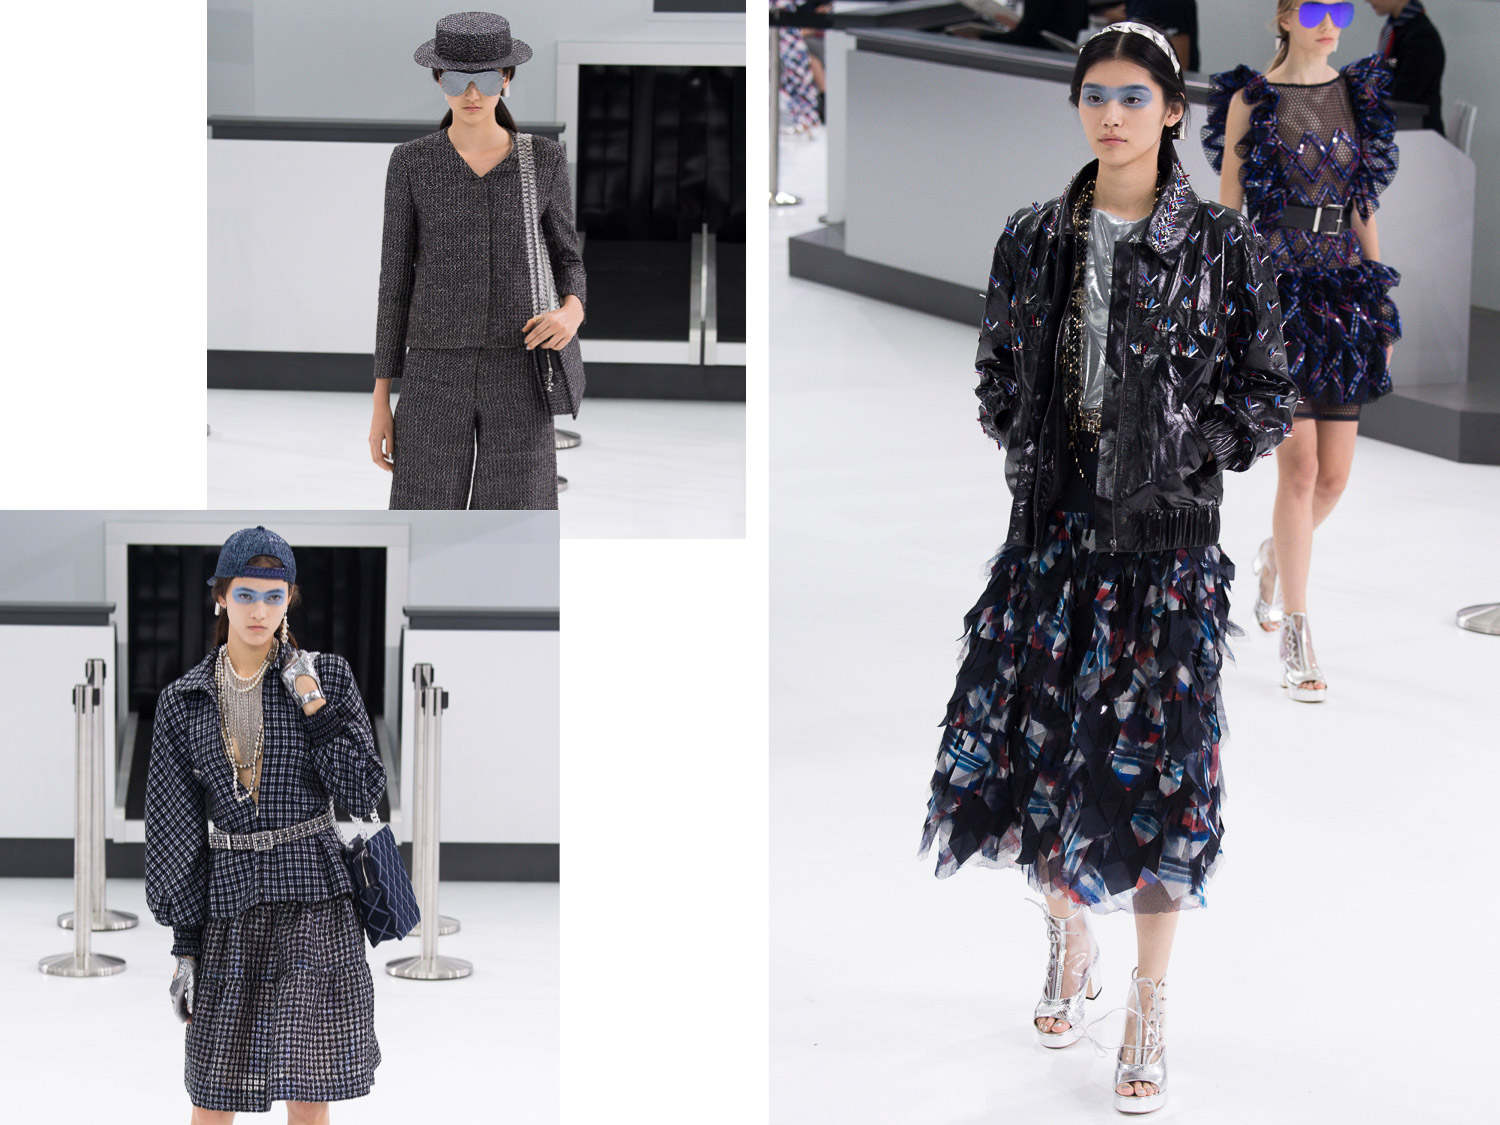 chanel-spring-2016_top-fashion-bloggers-uk_London's-best-fashion-bloggers-2016_top-best-liverpool-bloggers-2016-3